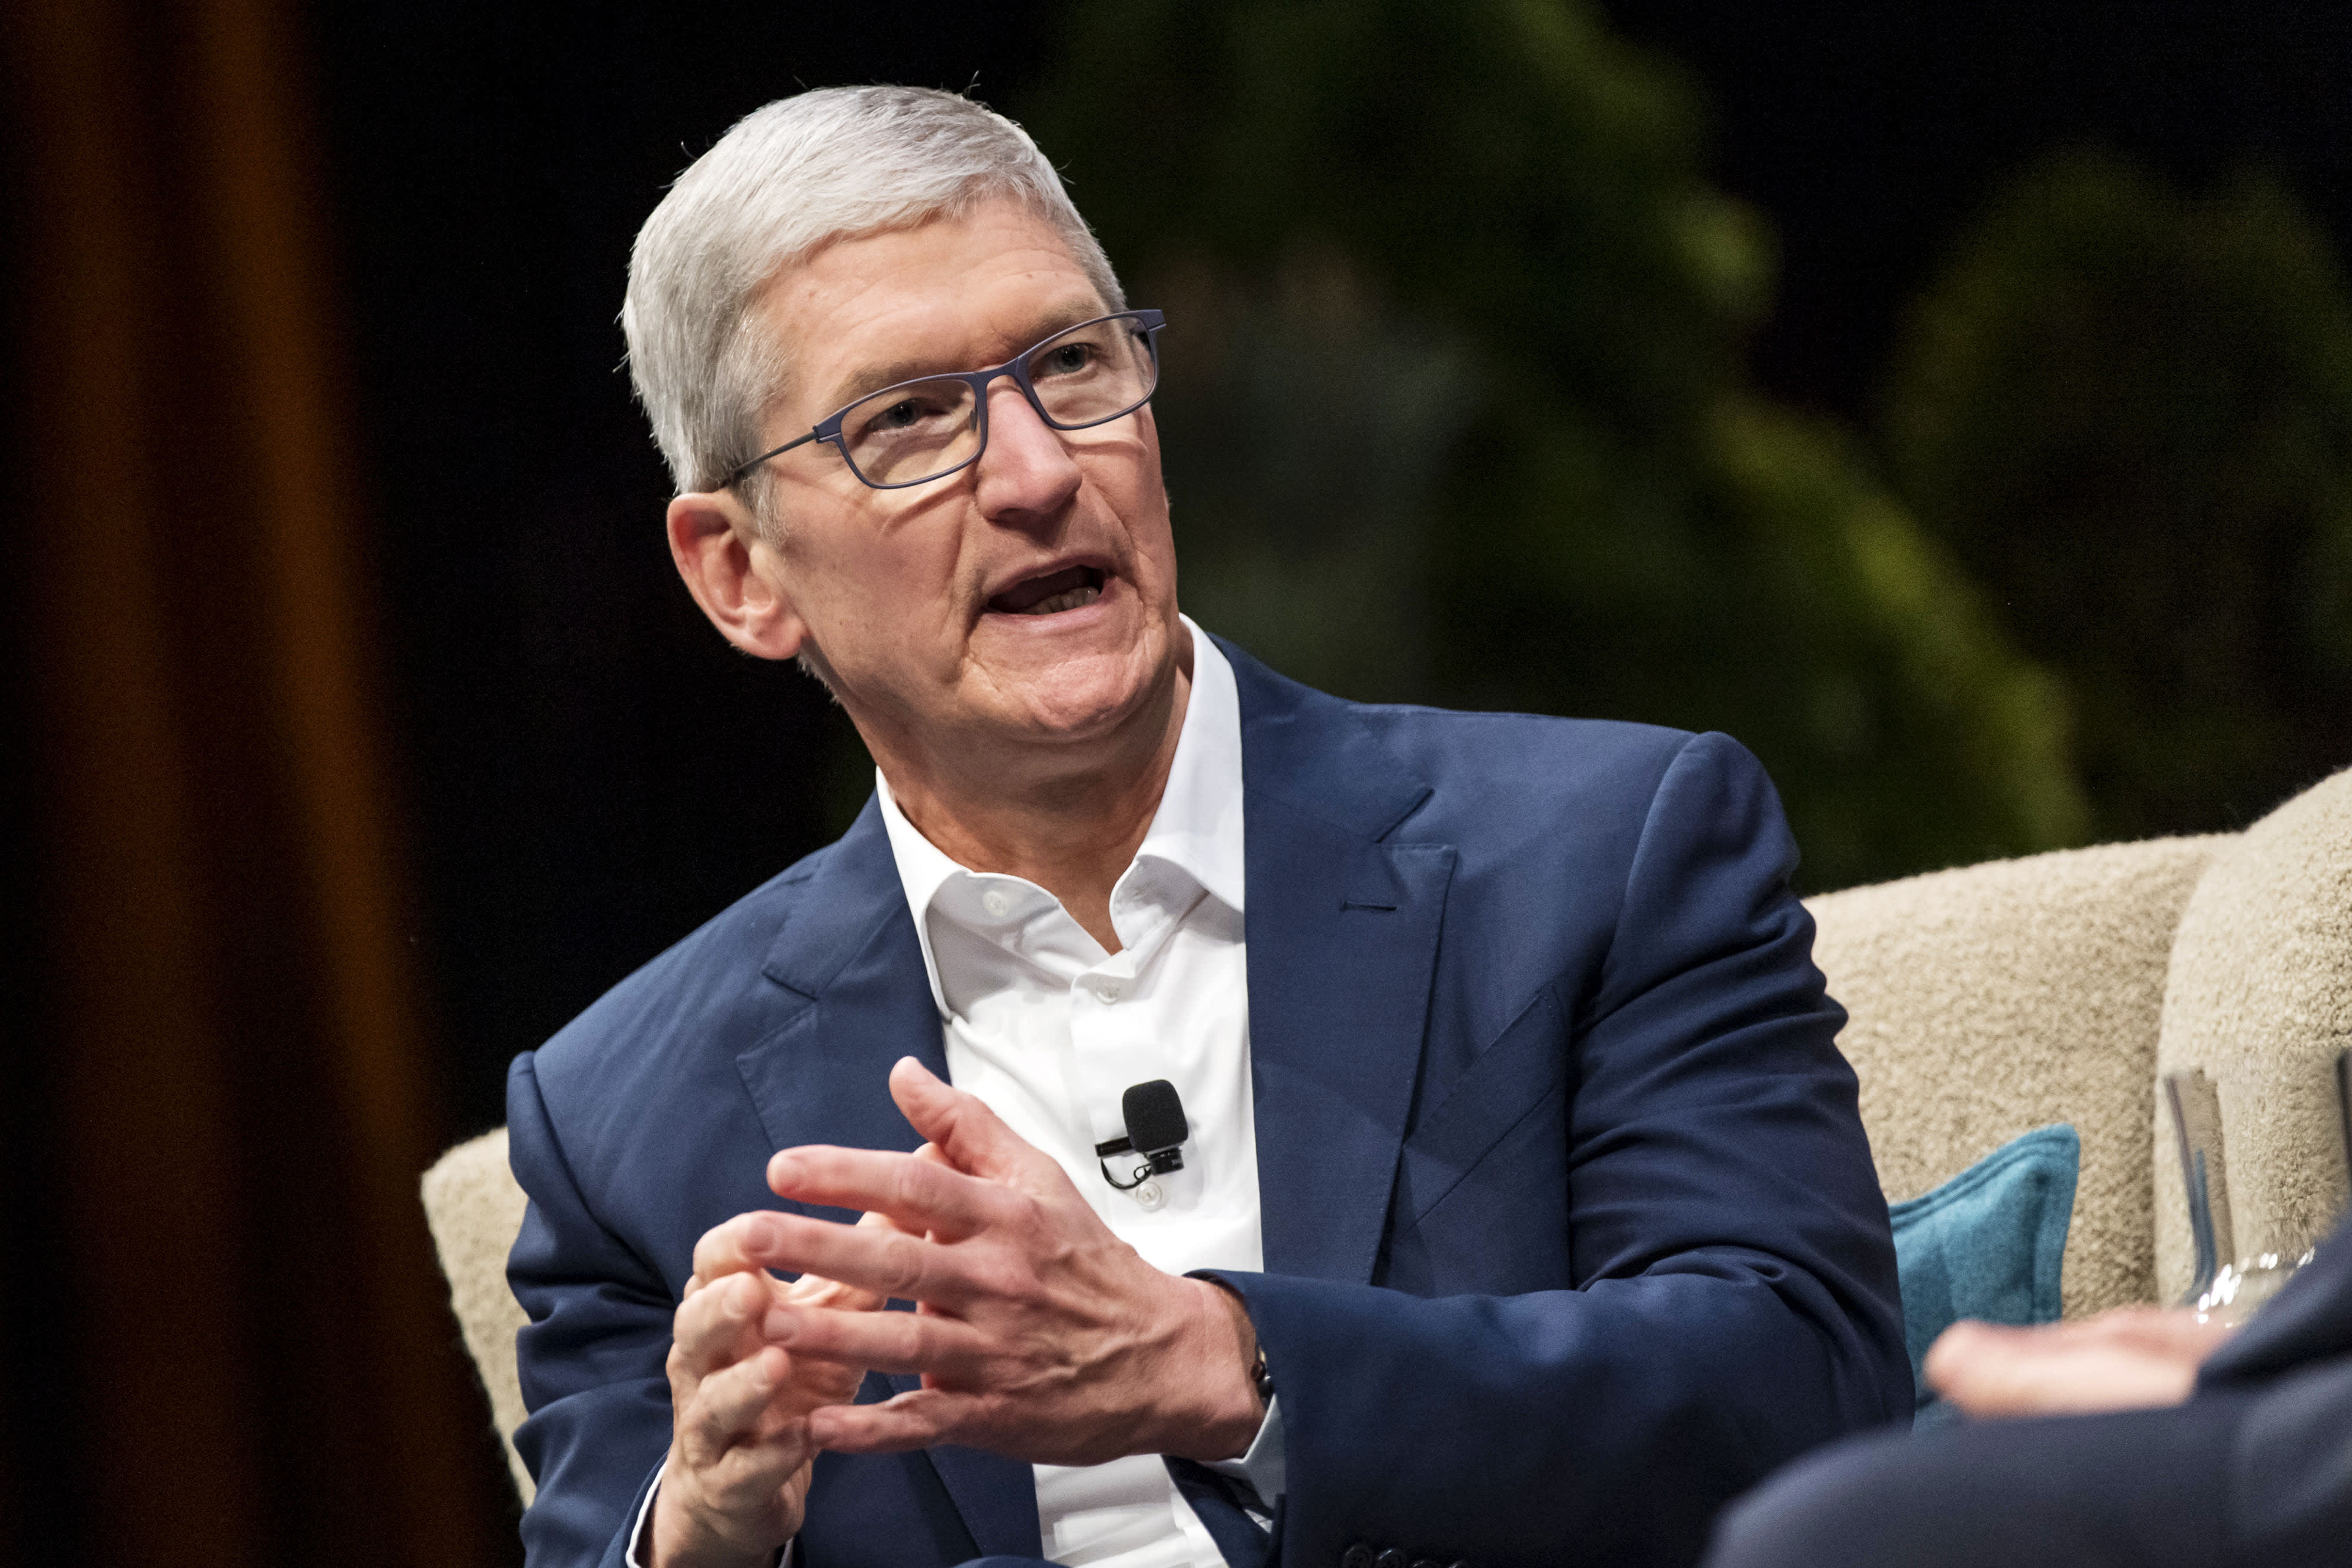 Tim Cook commits $100 million to Apple program for racial justice after killing of George Floyd